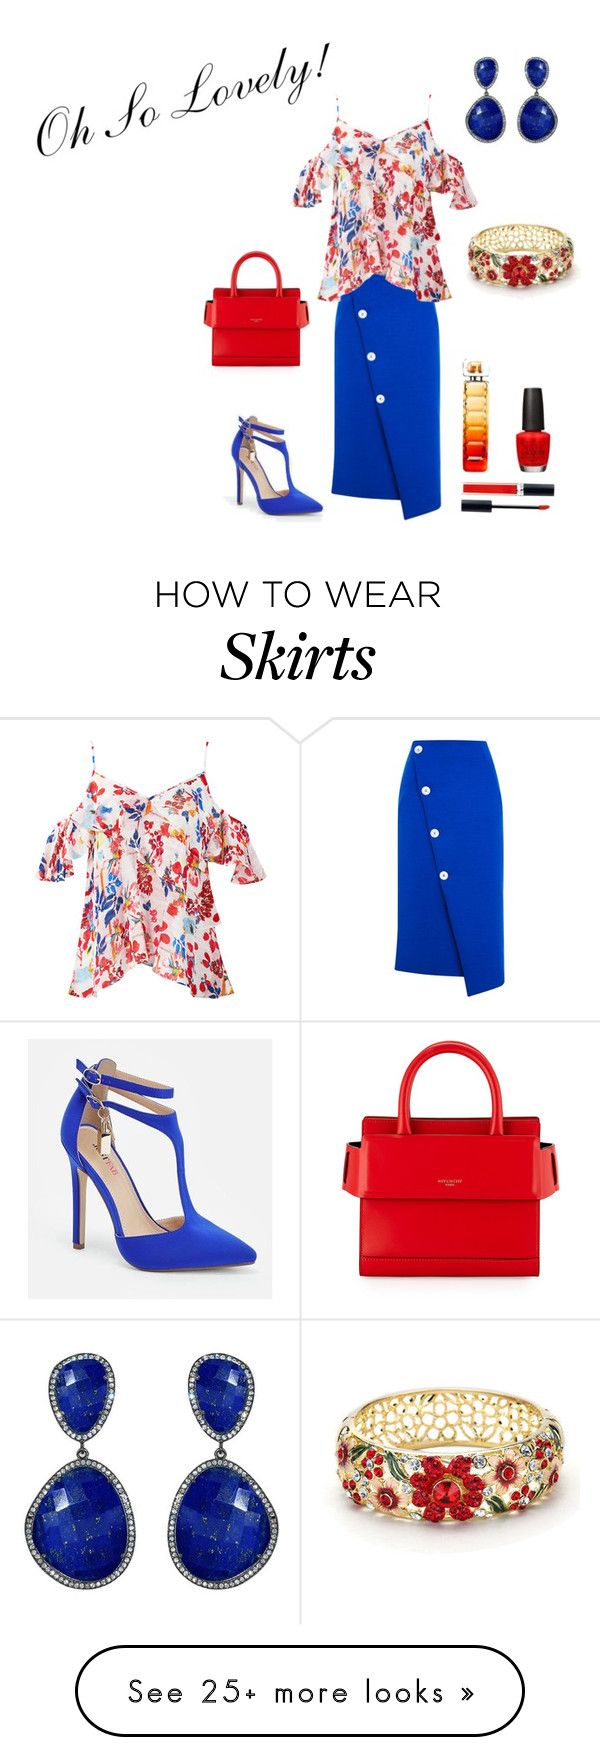 """""""Oh So Lovely!"""" by denise-grimes on Polyvore featuring Topshop, Tanya Taylor, JustFab, Givenchy, Susan Hanover, Christian Dior, OPI and BOSS Orange"""